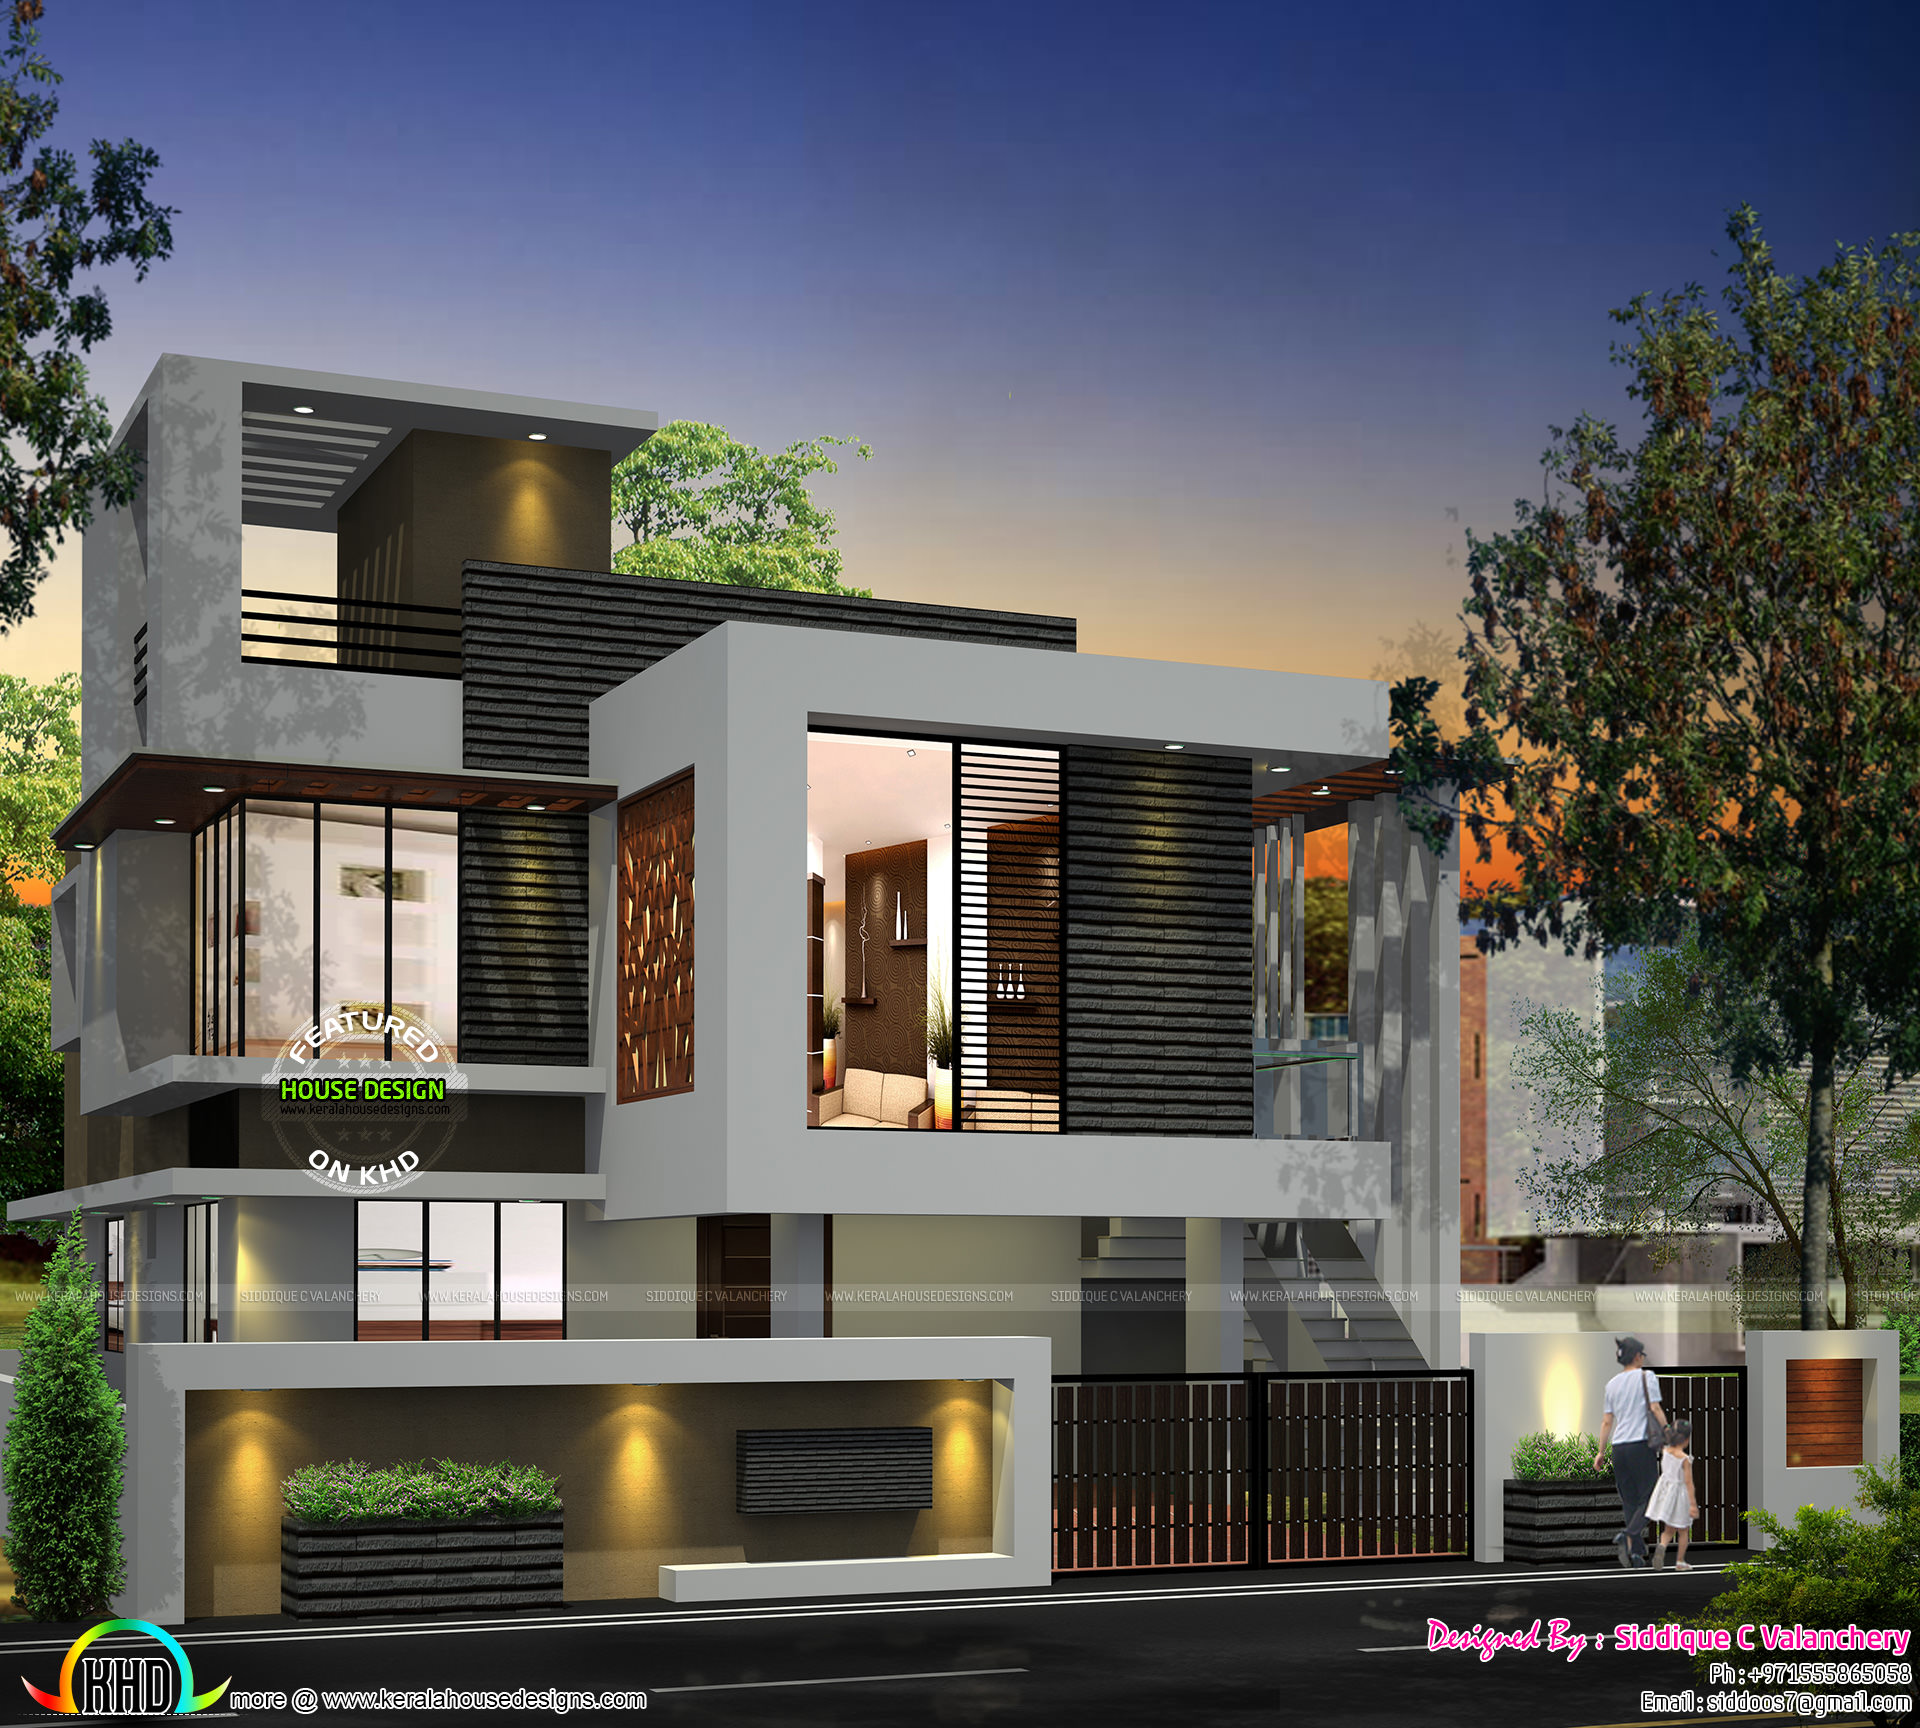 New Home Designs Latest Modern Homes Ultra Modern: Single Floor Turning To A Double Floor Home